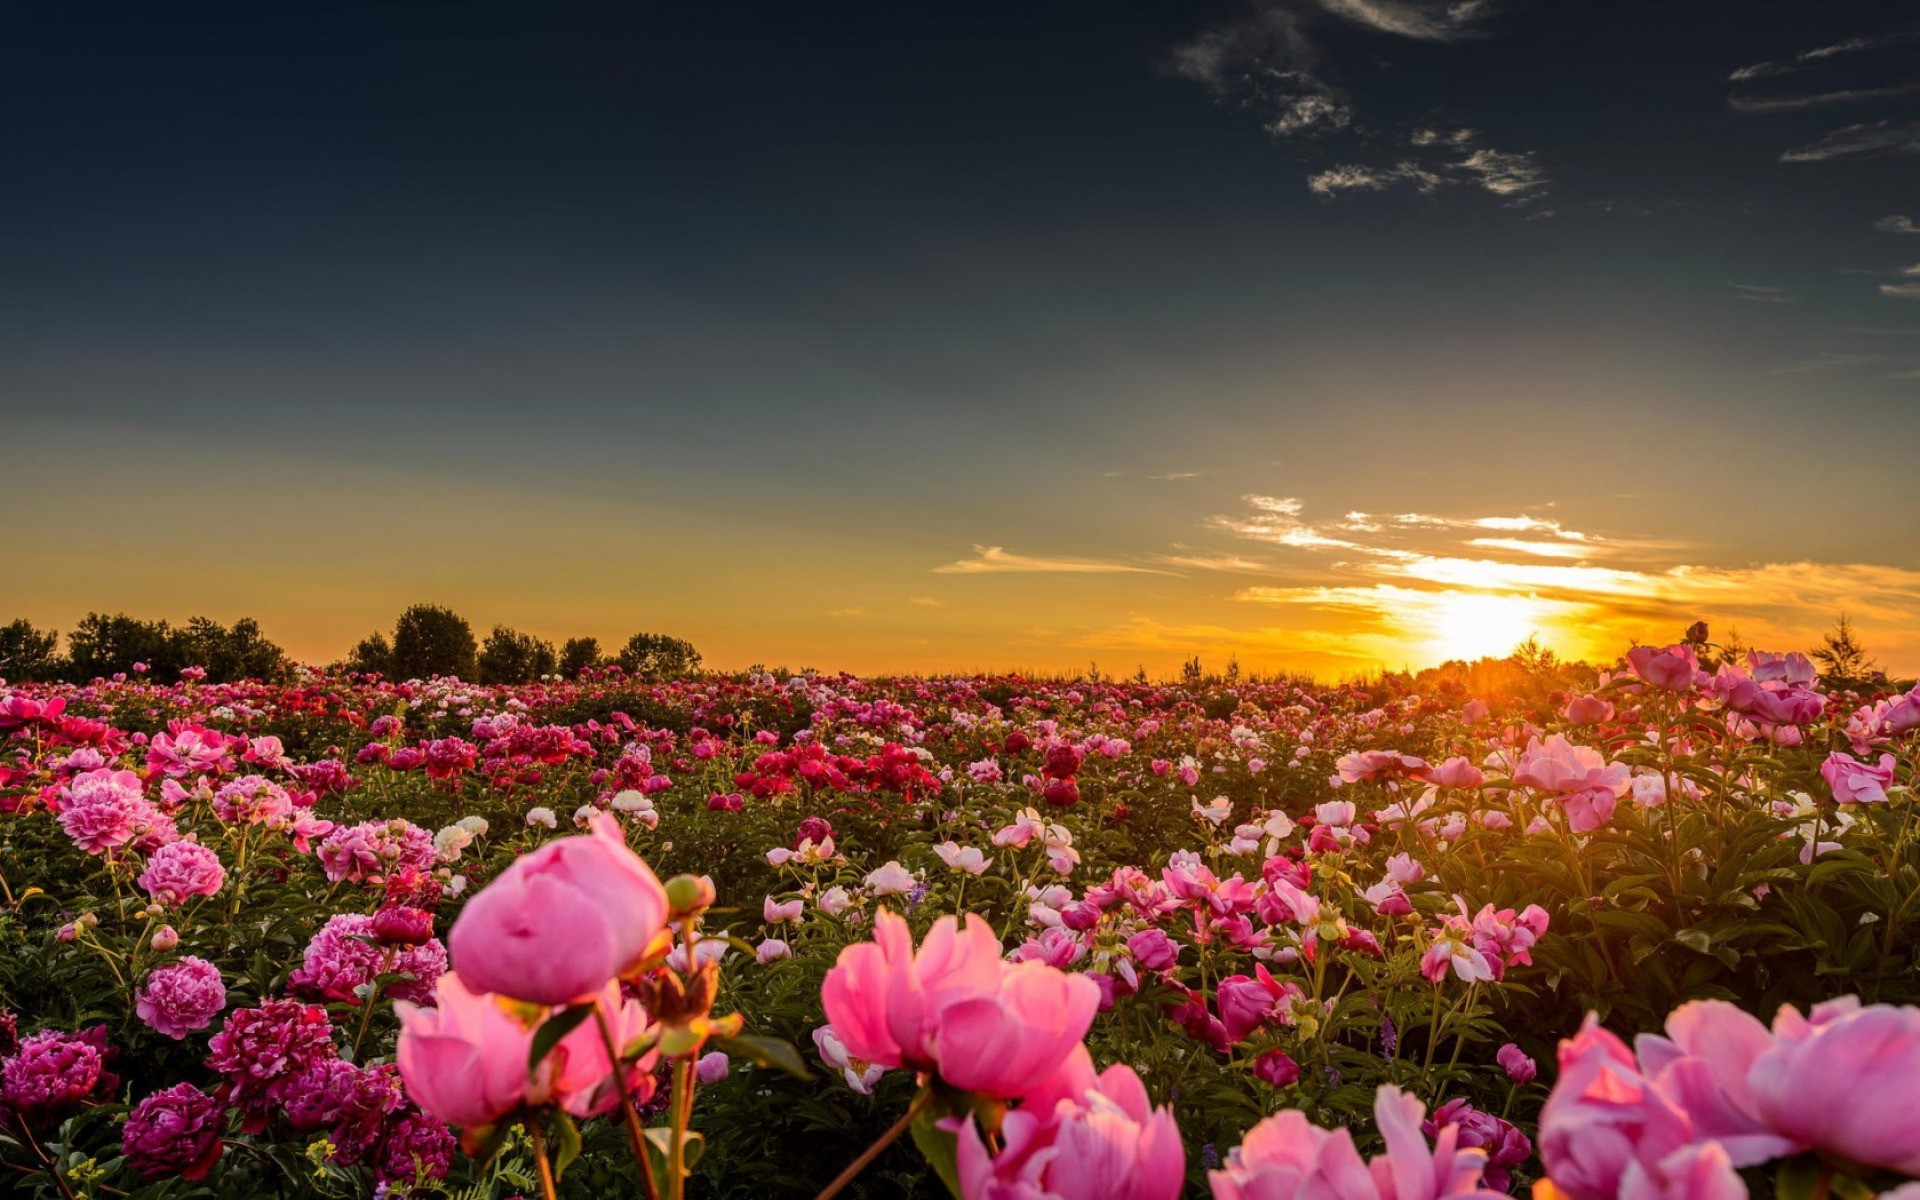 wallpapers pink peony desktop – photo #49. sunset, Sunlight, Flowers, Rose,  Pink Roses, Nature .